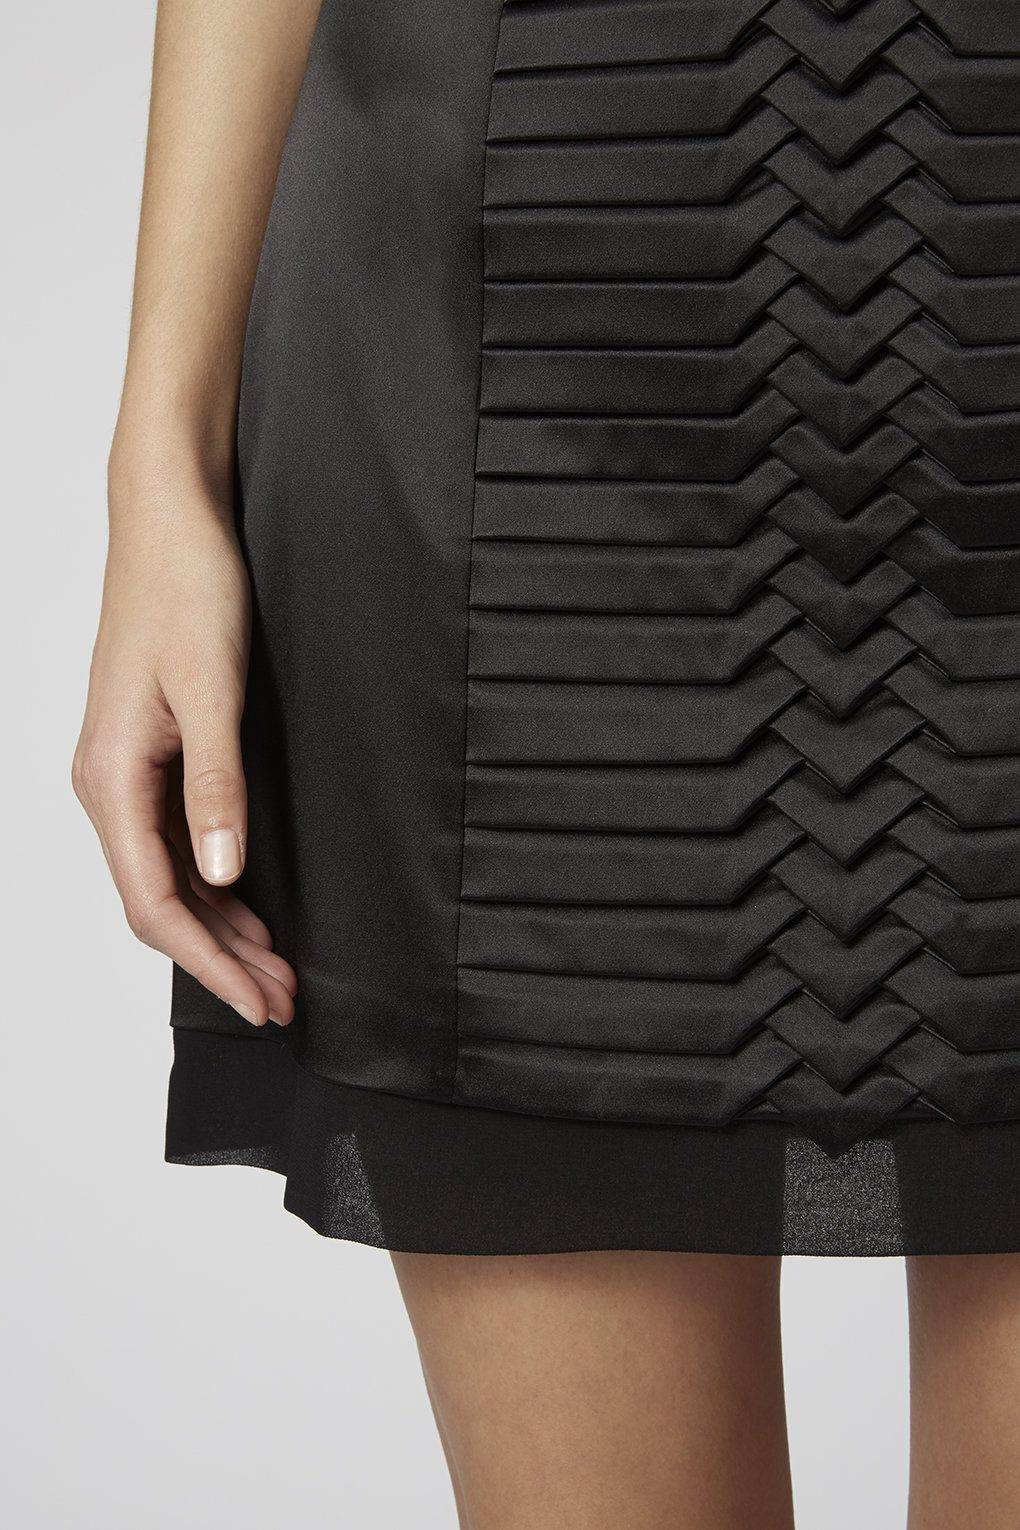 Master class on the pattern of the half-skirt